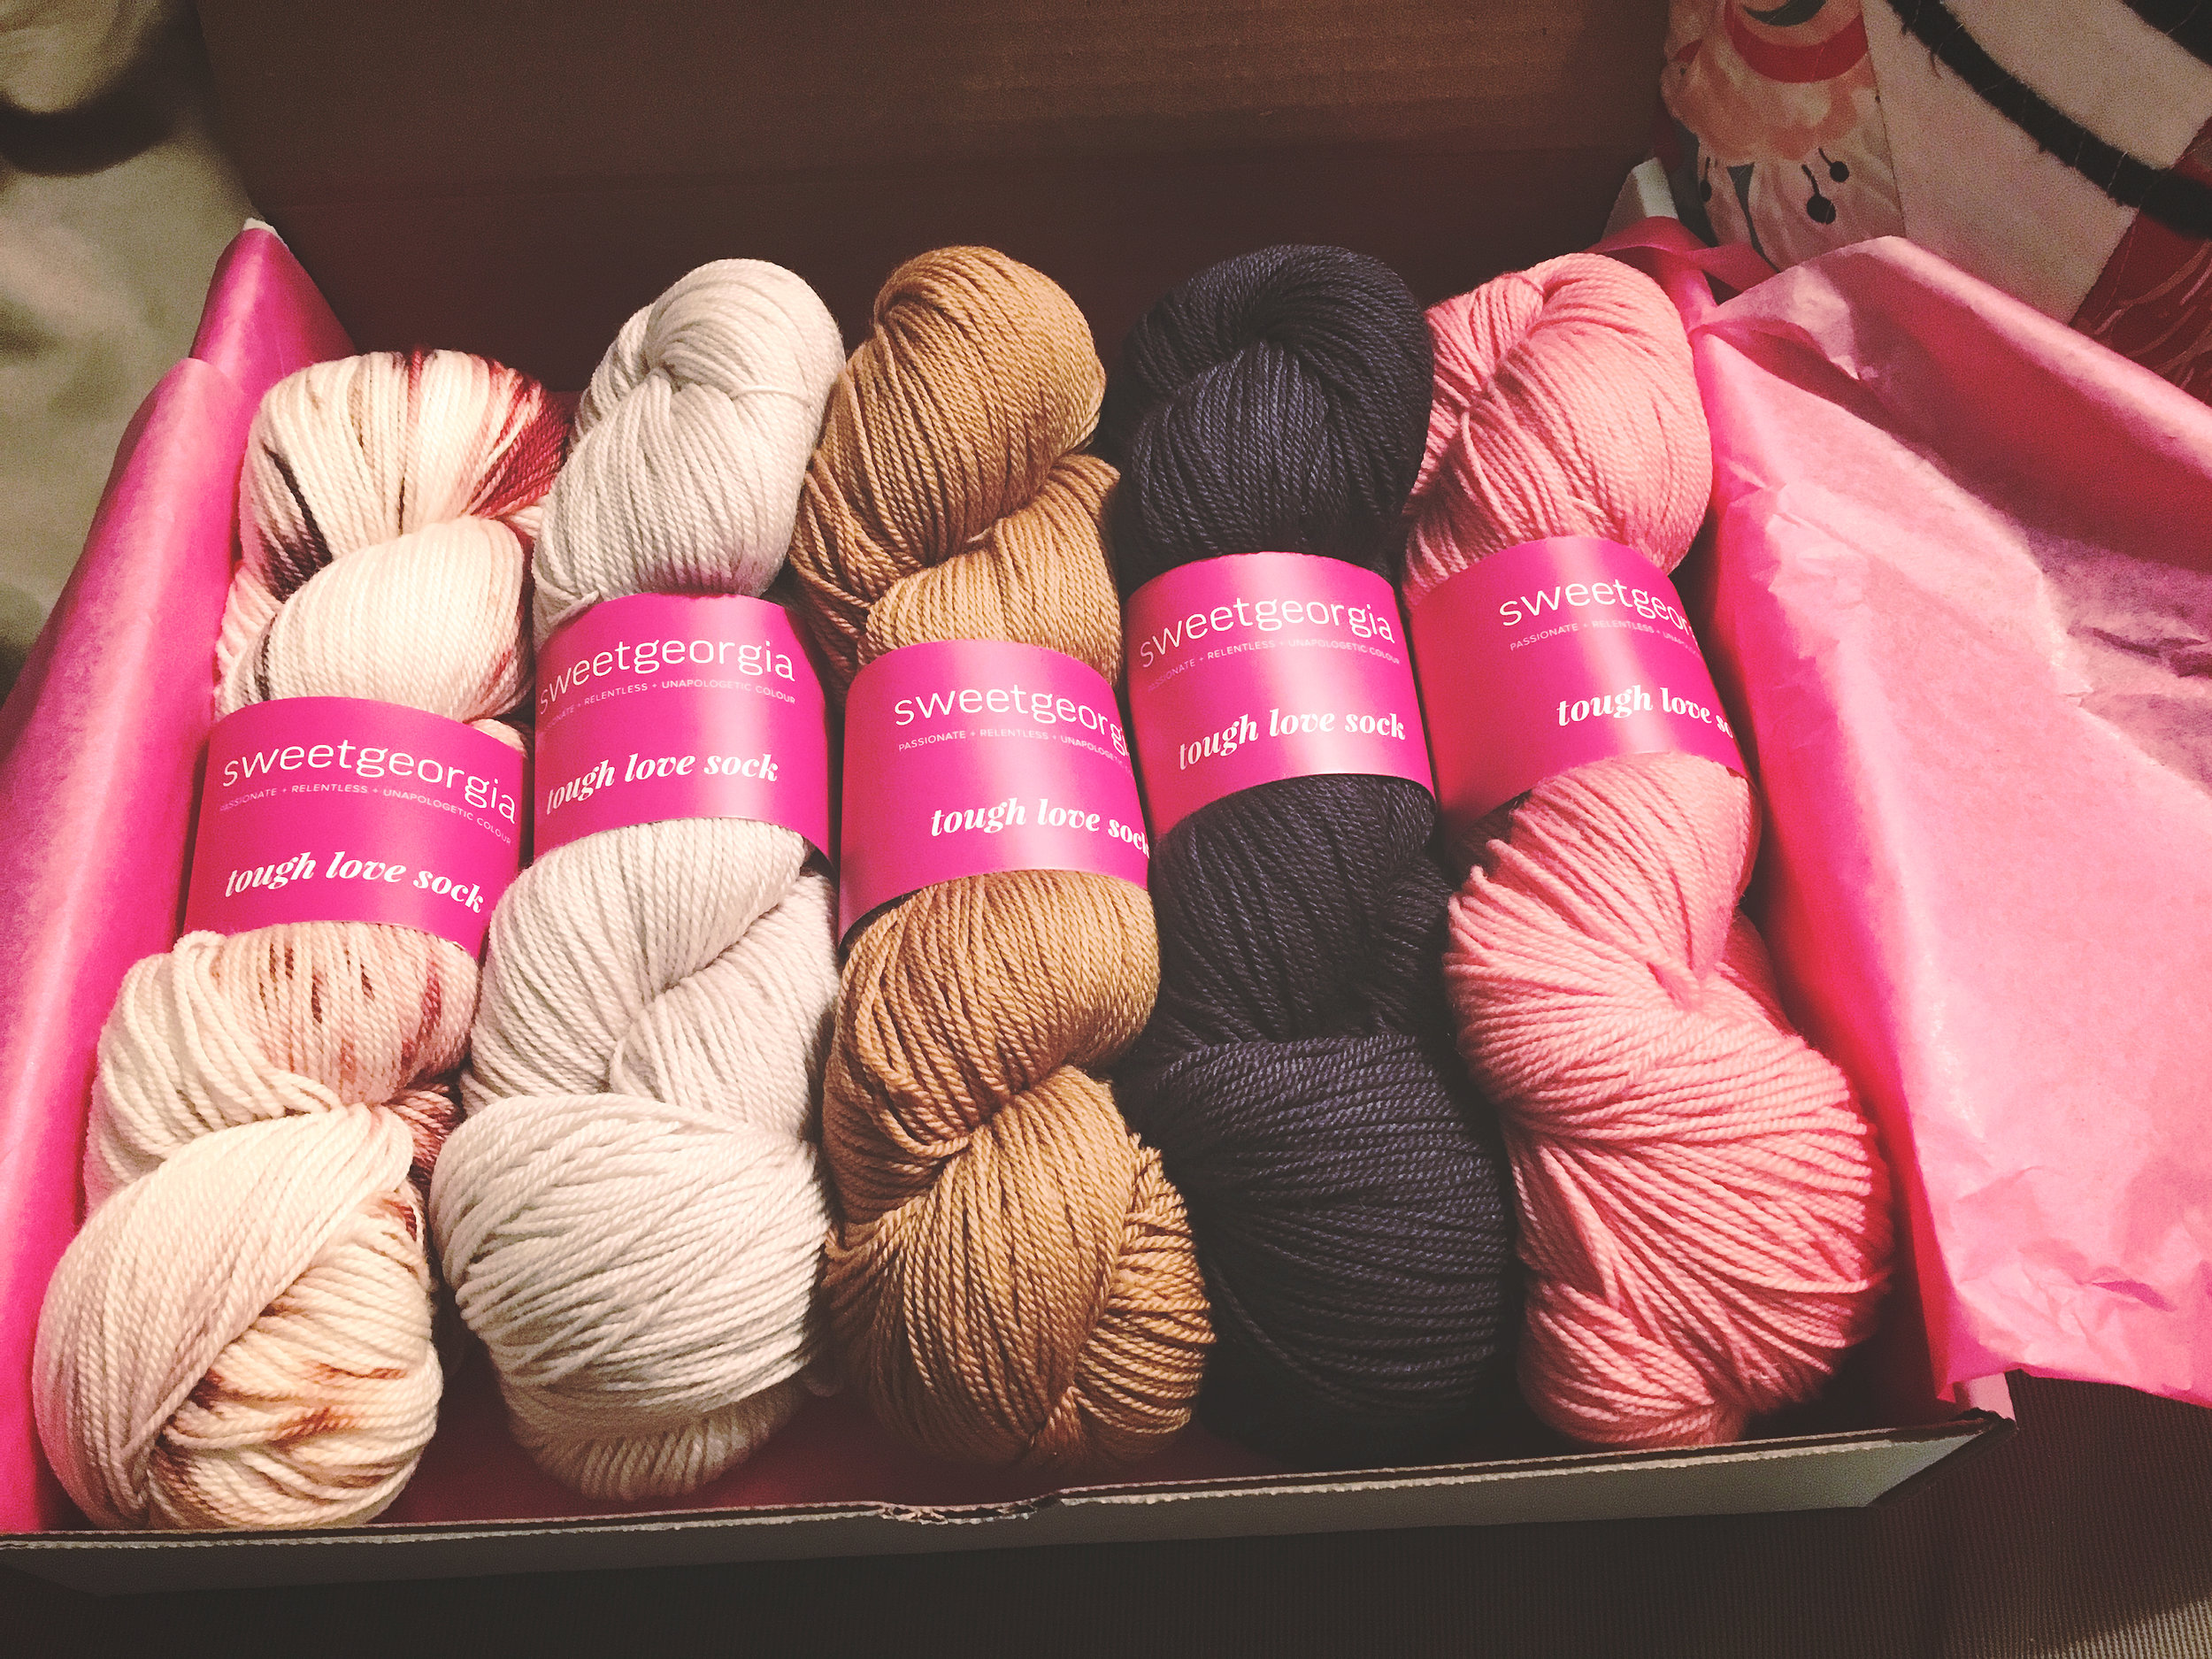 Here are the yarns all nicely boxed up....